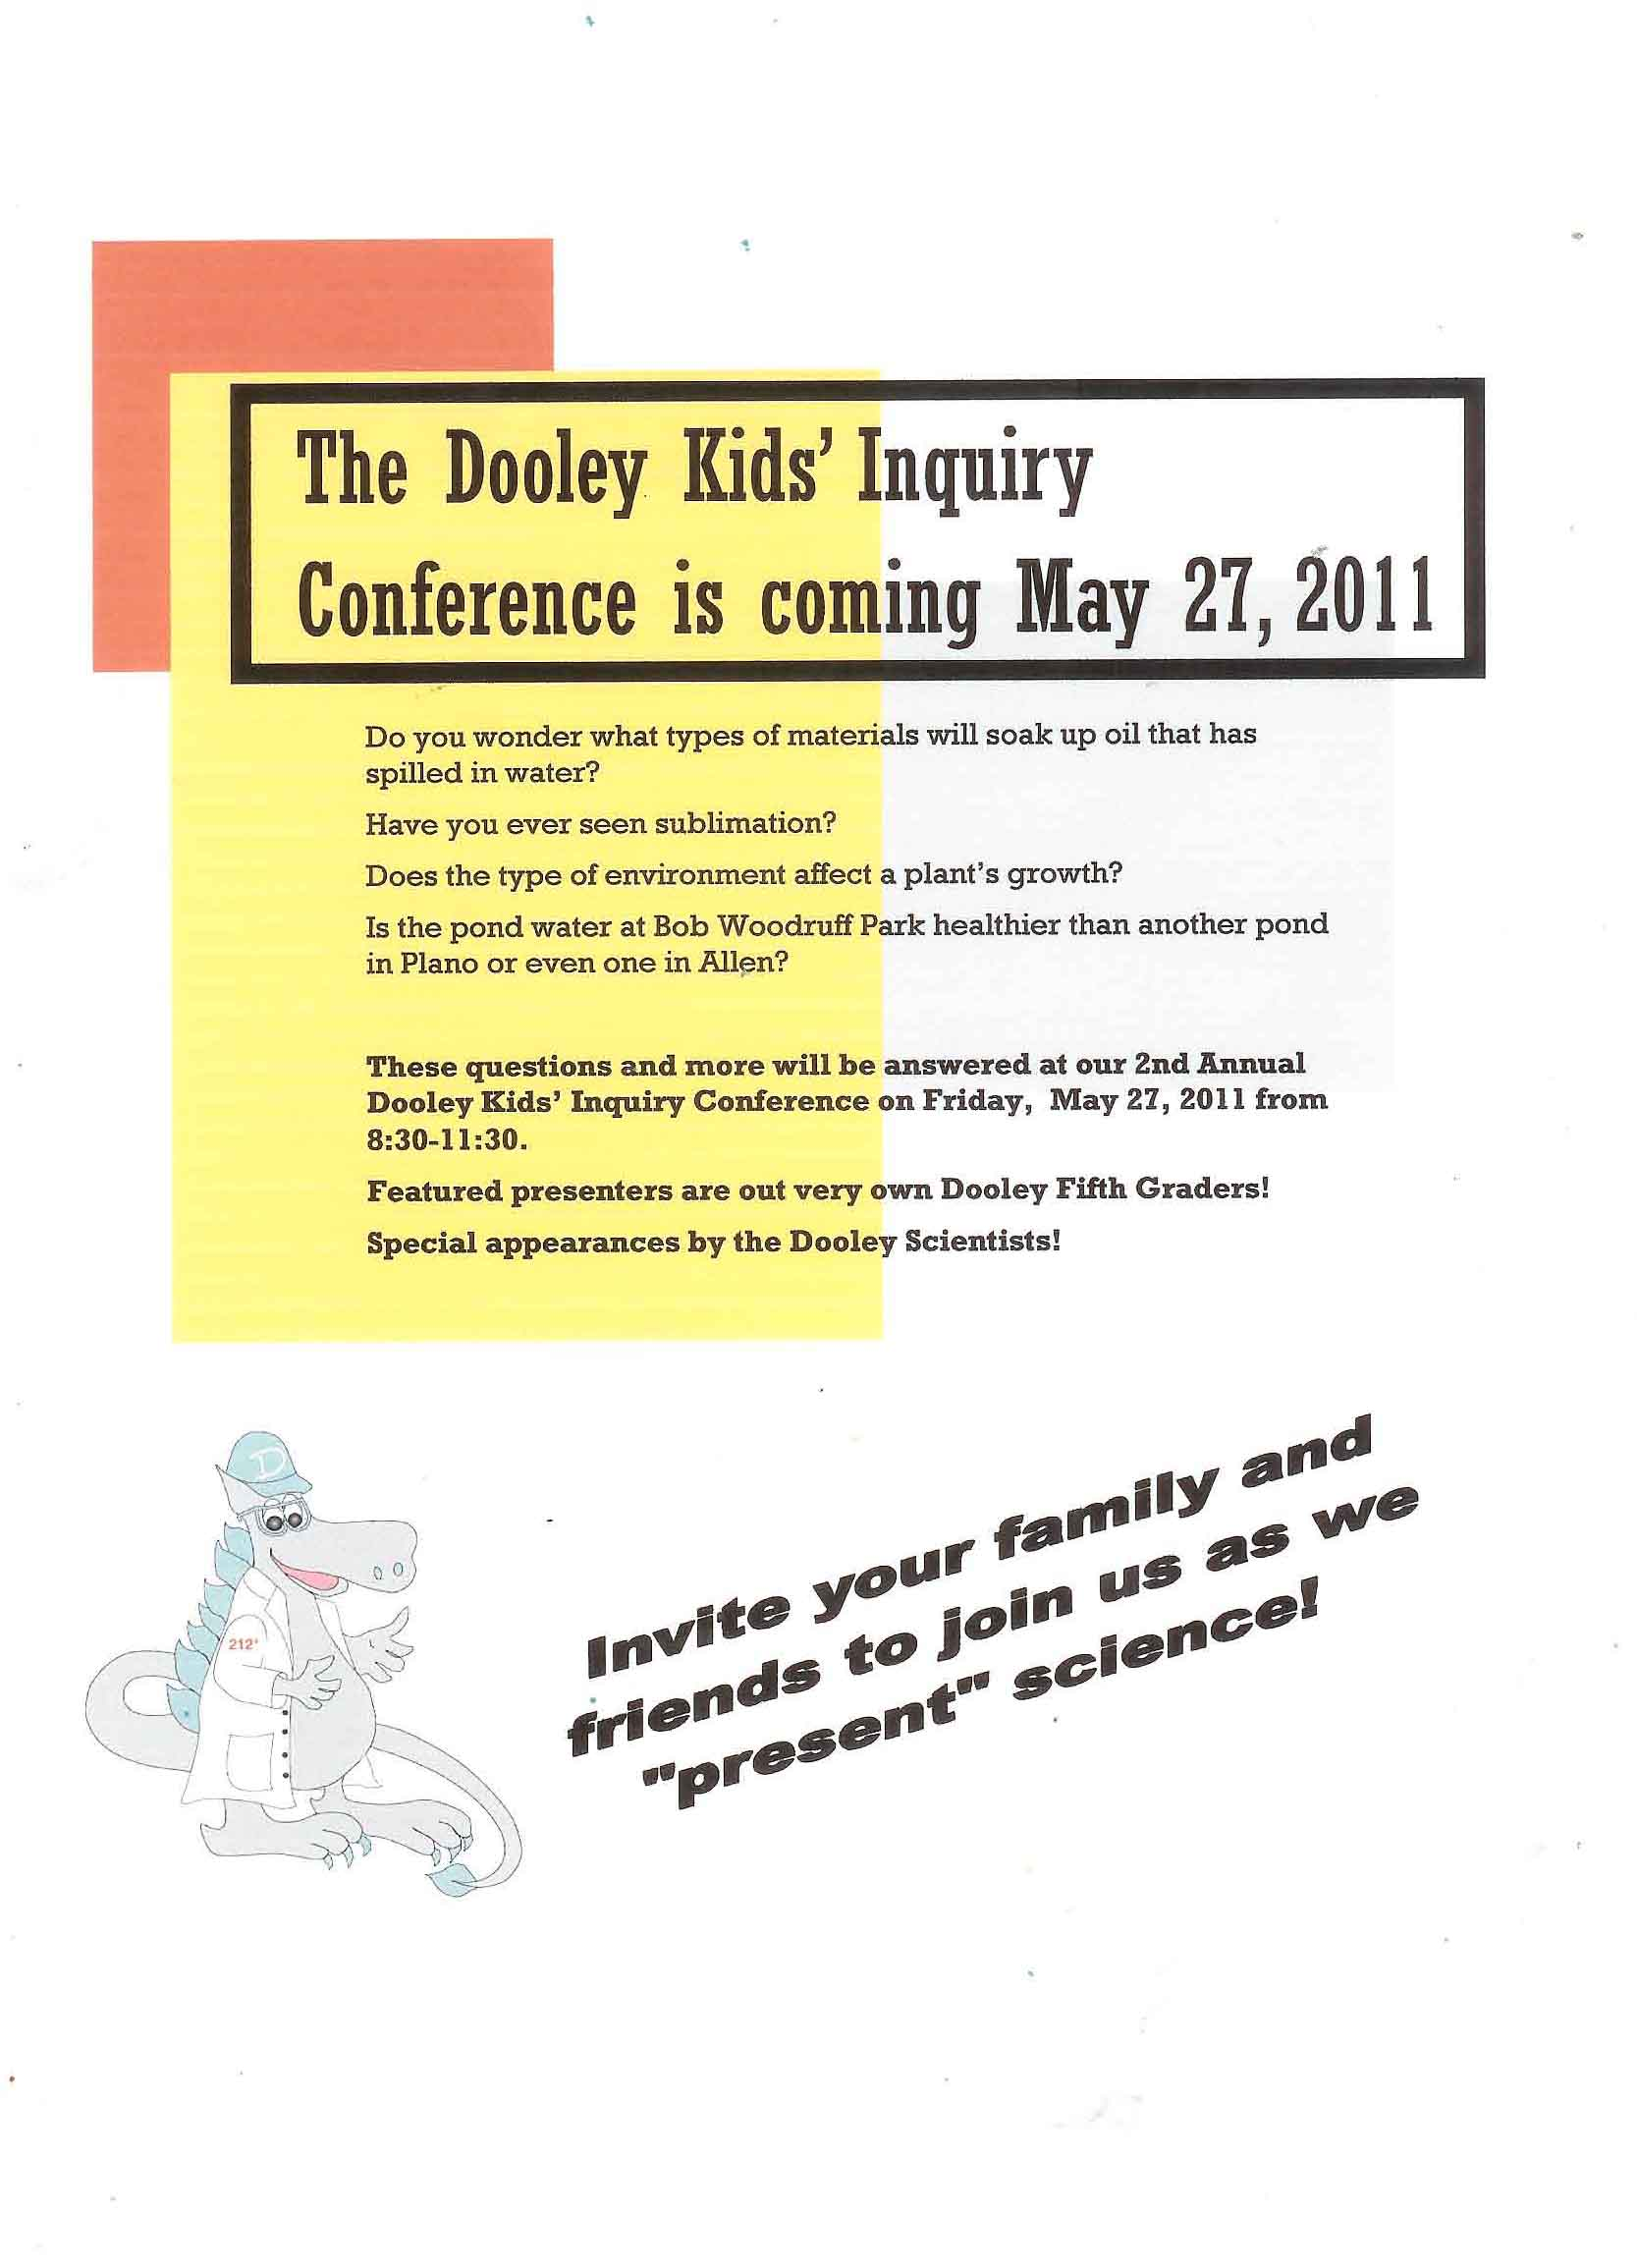 Kid's Inquiry Conference